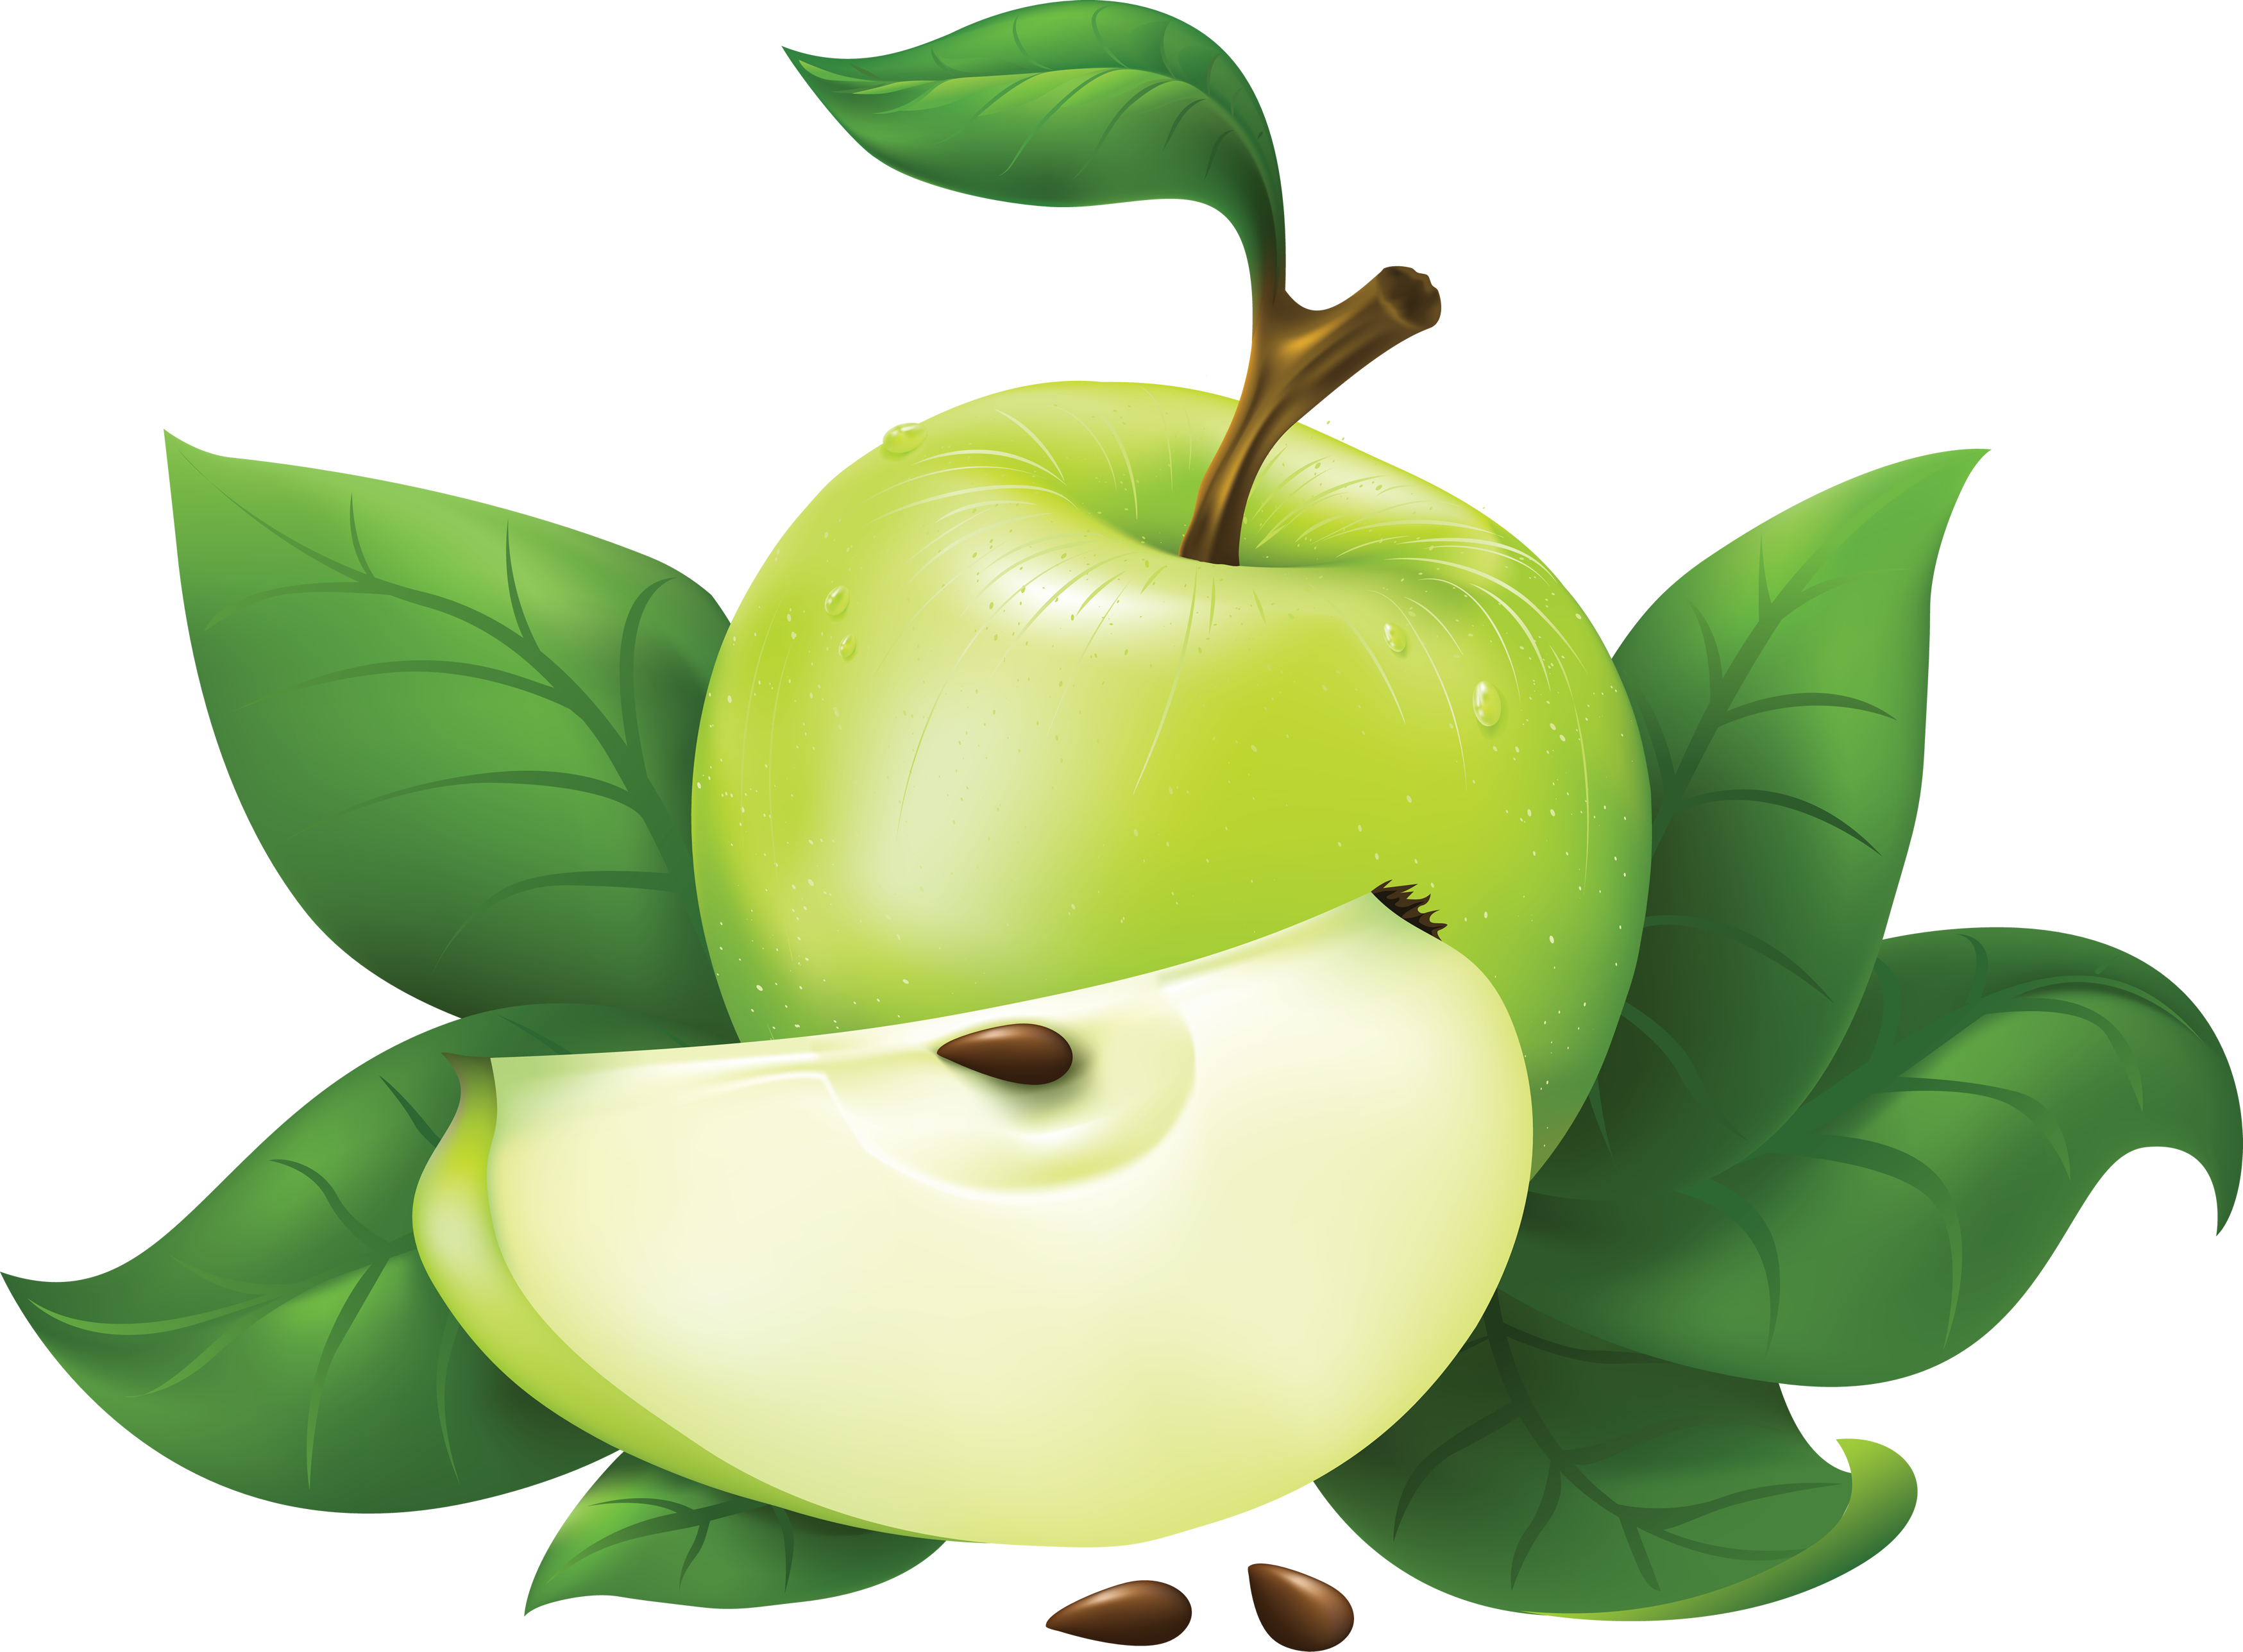 Now you can download Apple PNG Picture